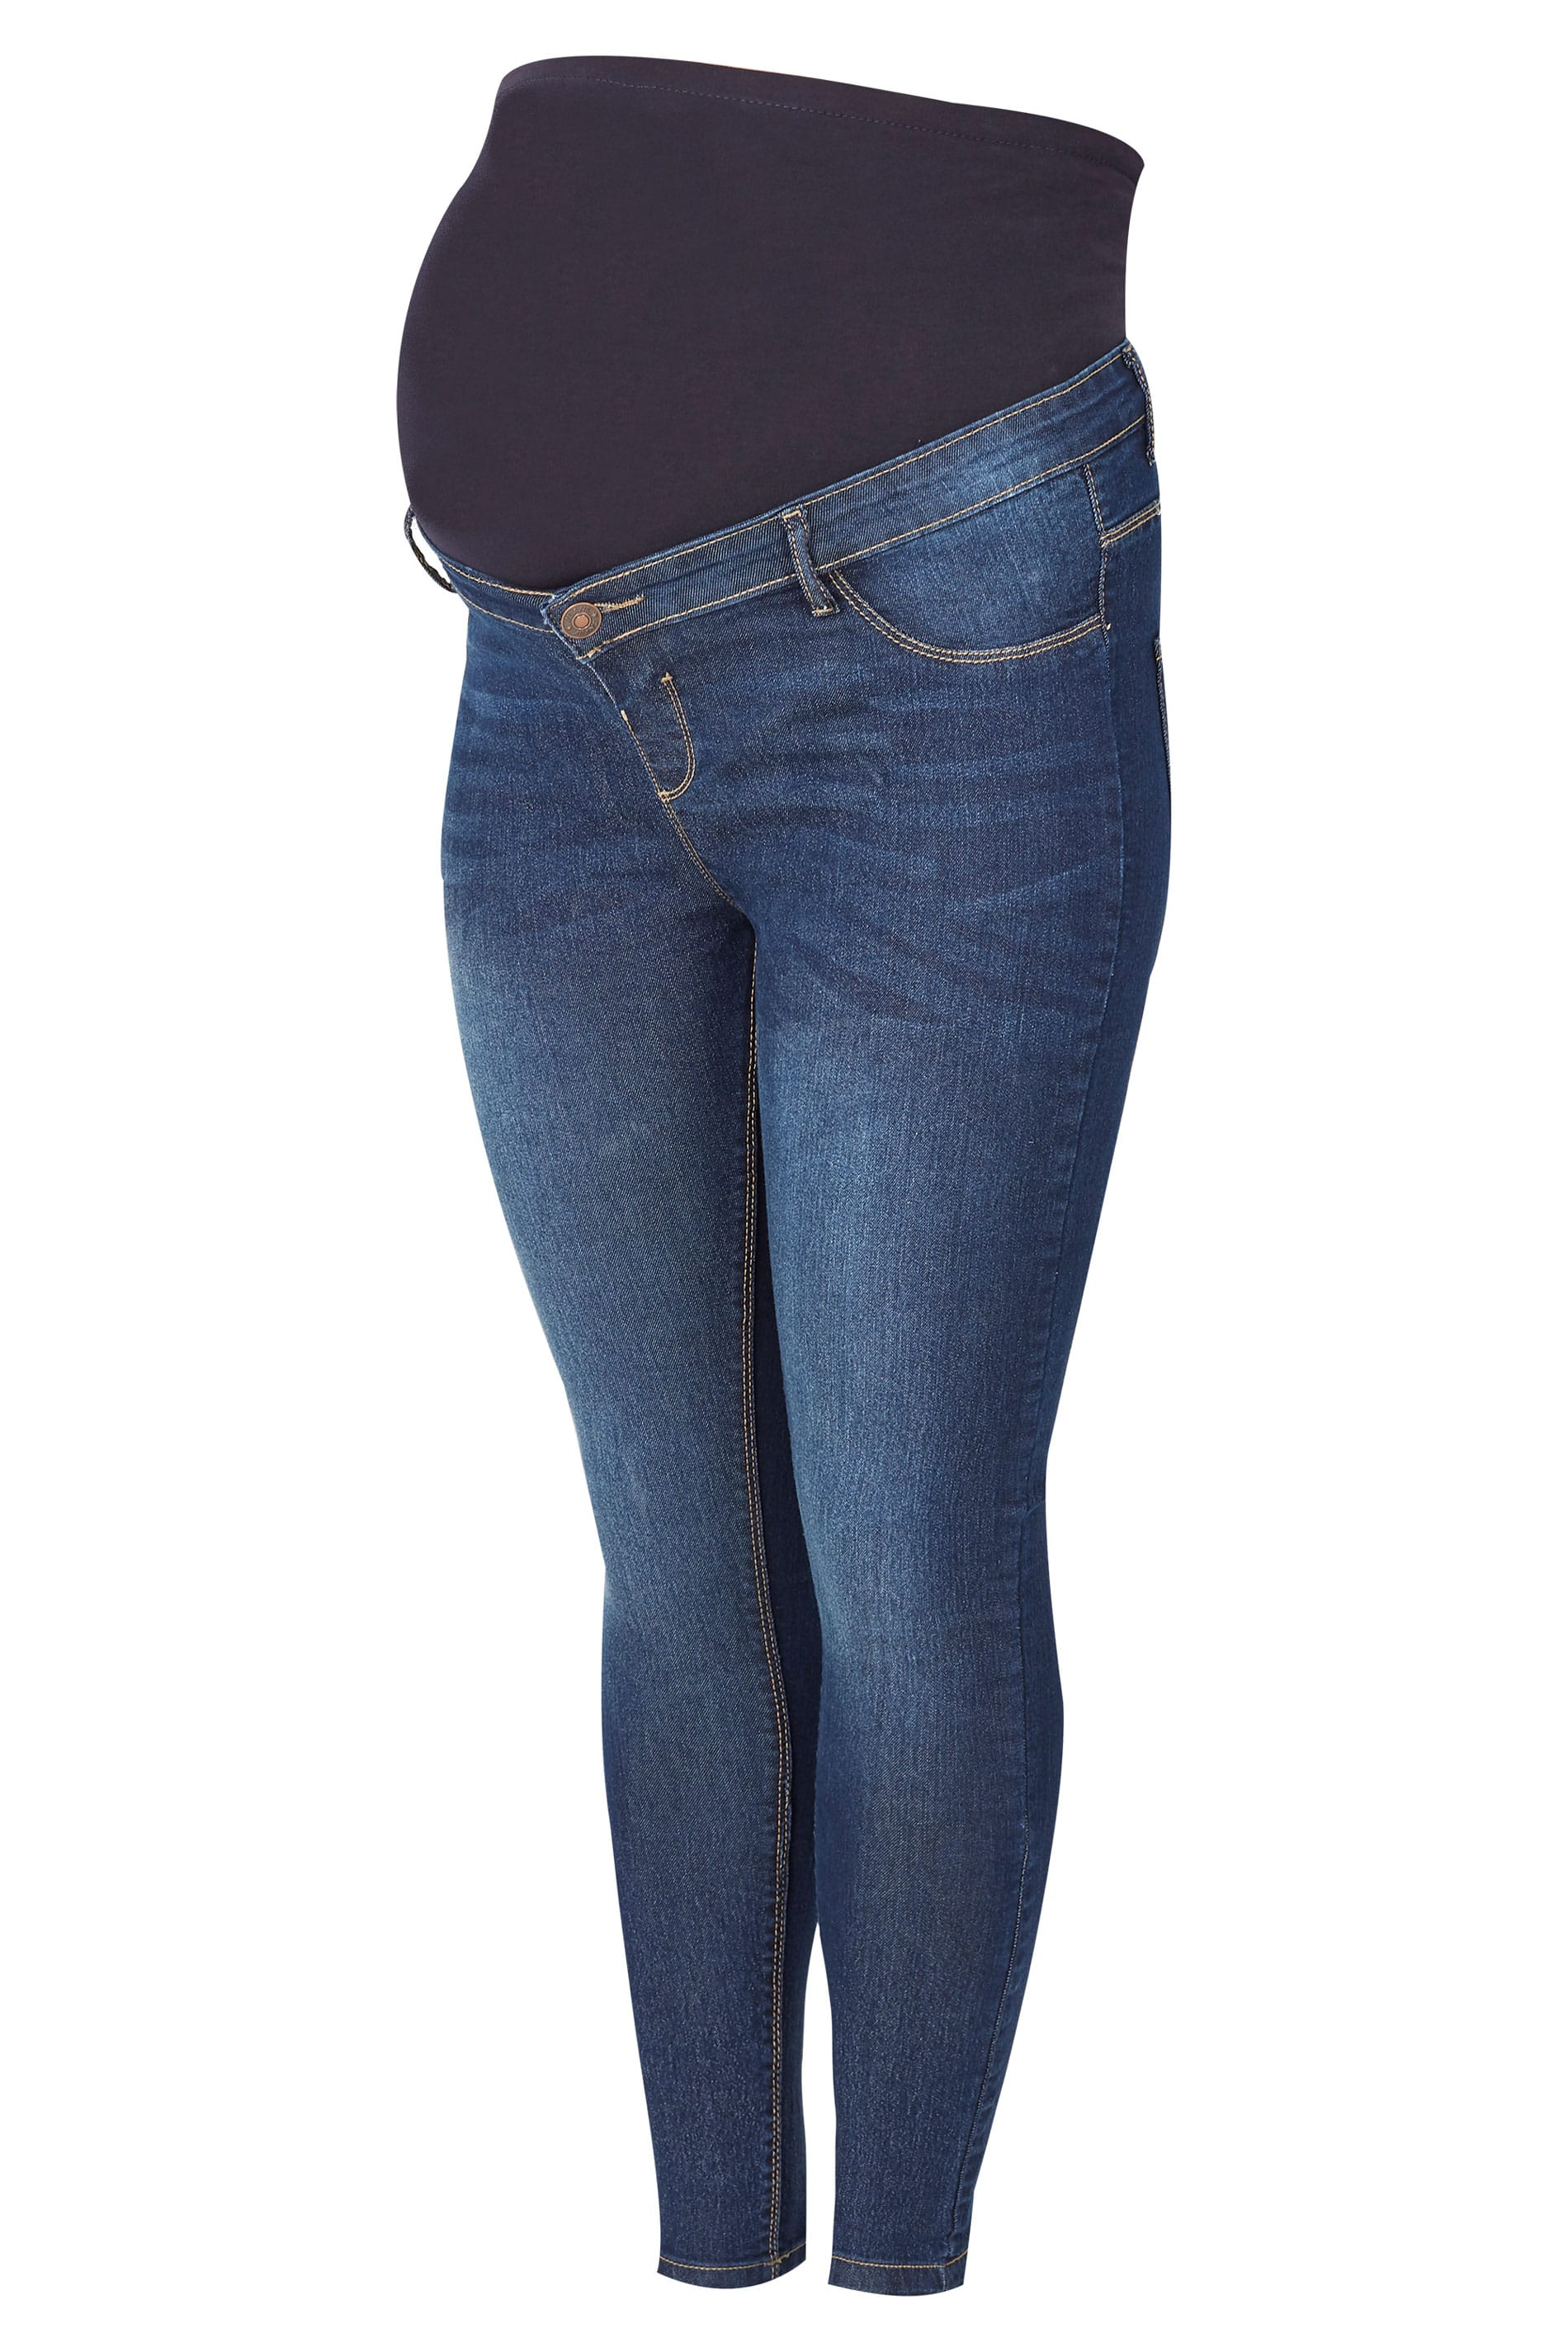 83c7a18567b4c BUMP IT UP MATERNITY Dark Blue Mid Wash Skinny Jeans With Comfort Panel